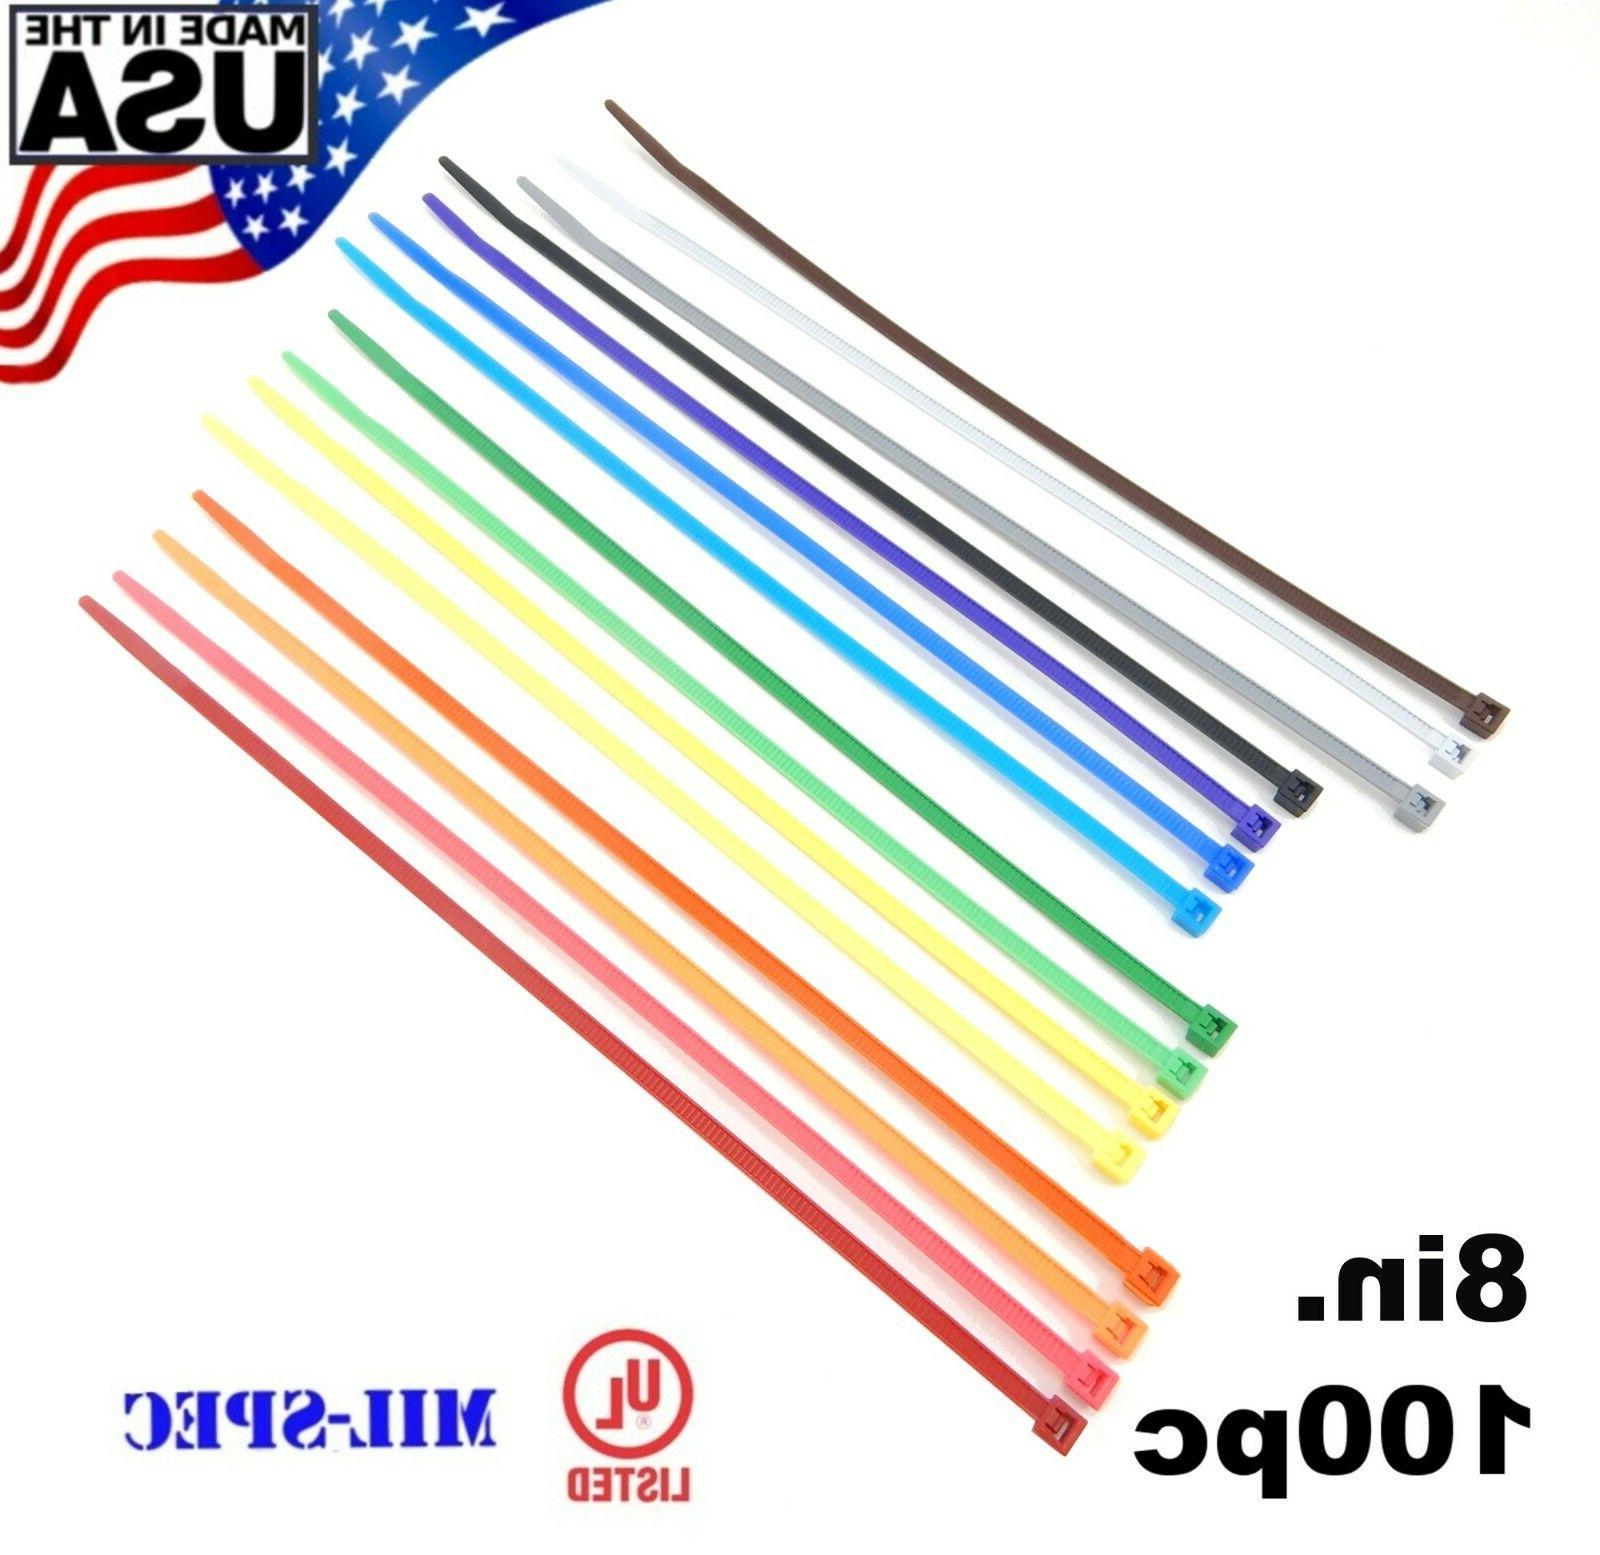 color zip cable ties 8 40lbs 100pc